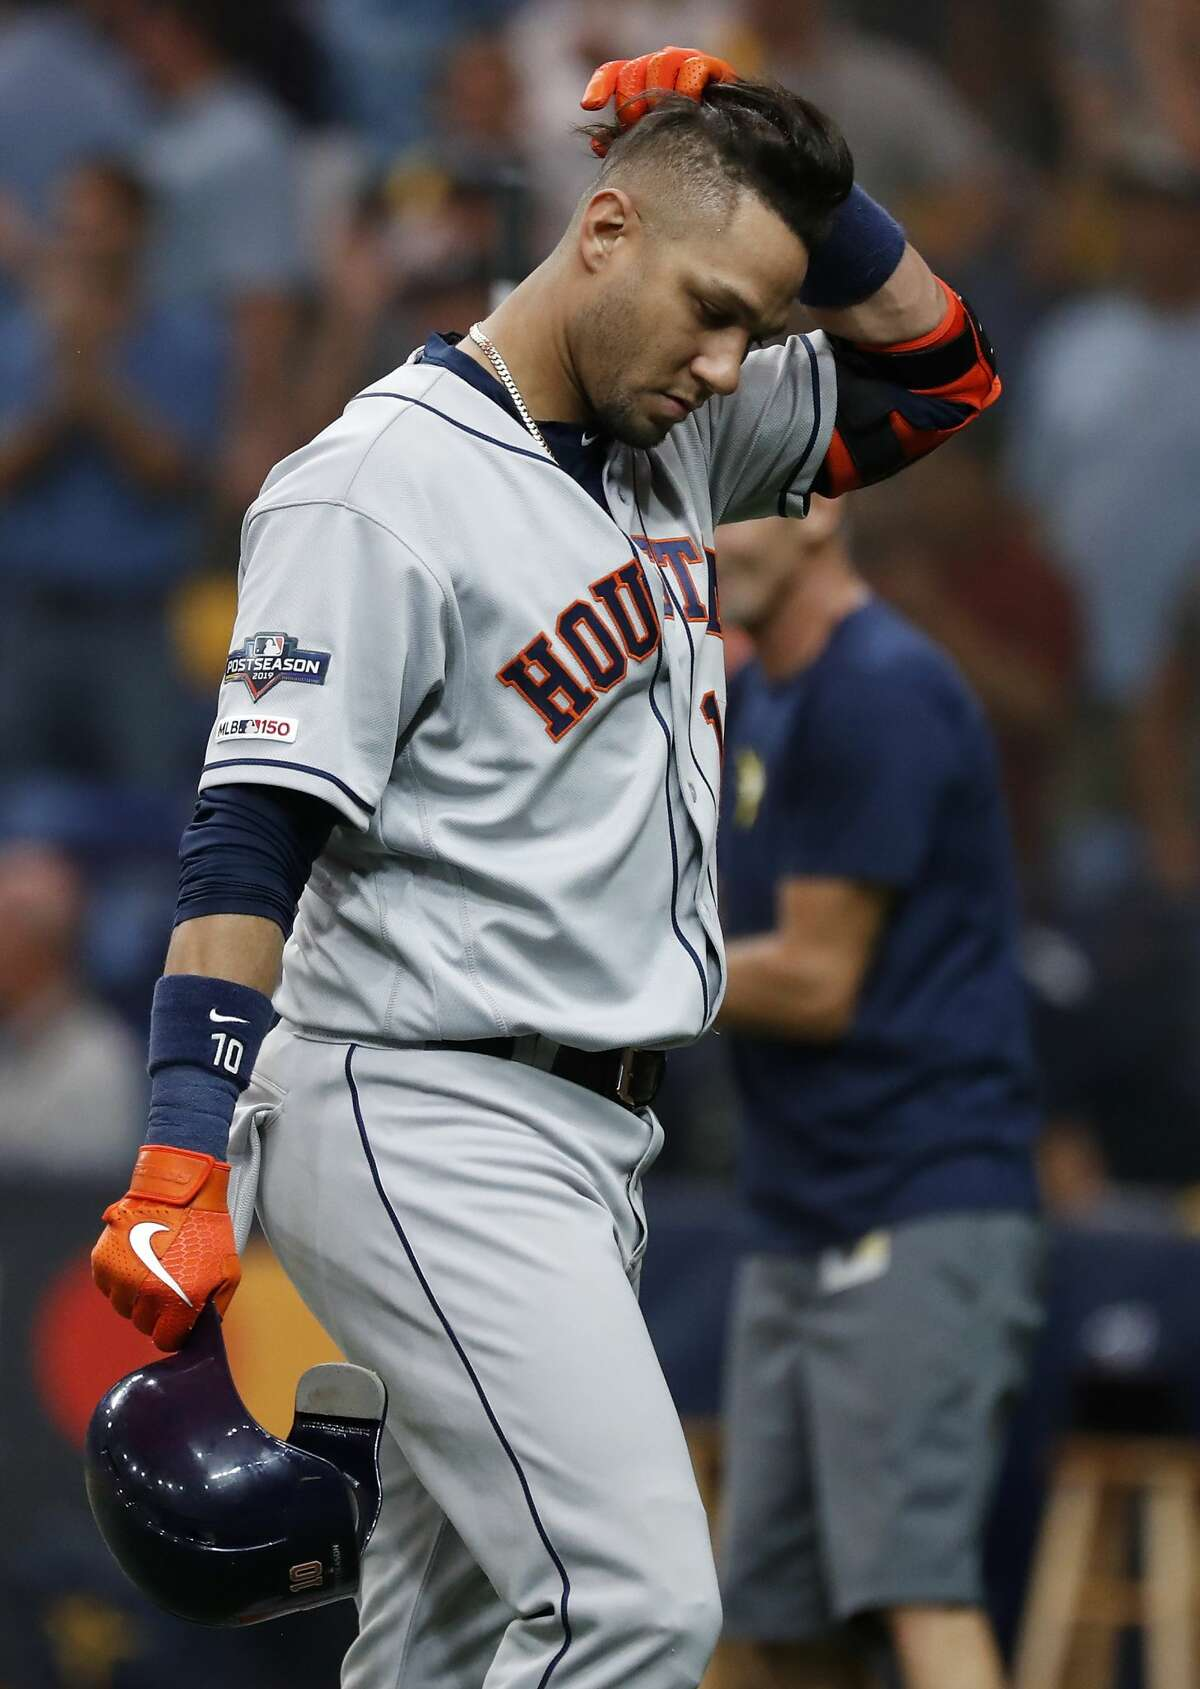 Houston Astros first baseman Yuli Gurriel walks off the field after grounding out to Tampa Bay Rays third baseman Joey Wendle to end Game 4 of the American League Division Series at Tropicana Field on Tuesday, Oct. 8, 2019, in St. Petersburg, Fla. The Rays beat the Astros 4-1 to even the best-of-five series at 2-2.